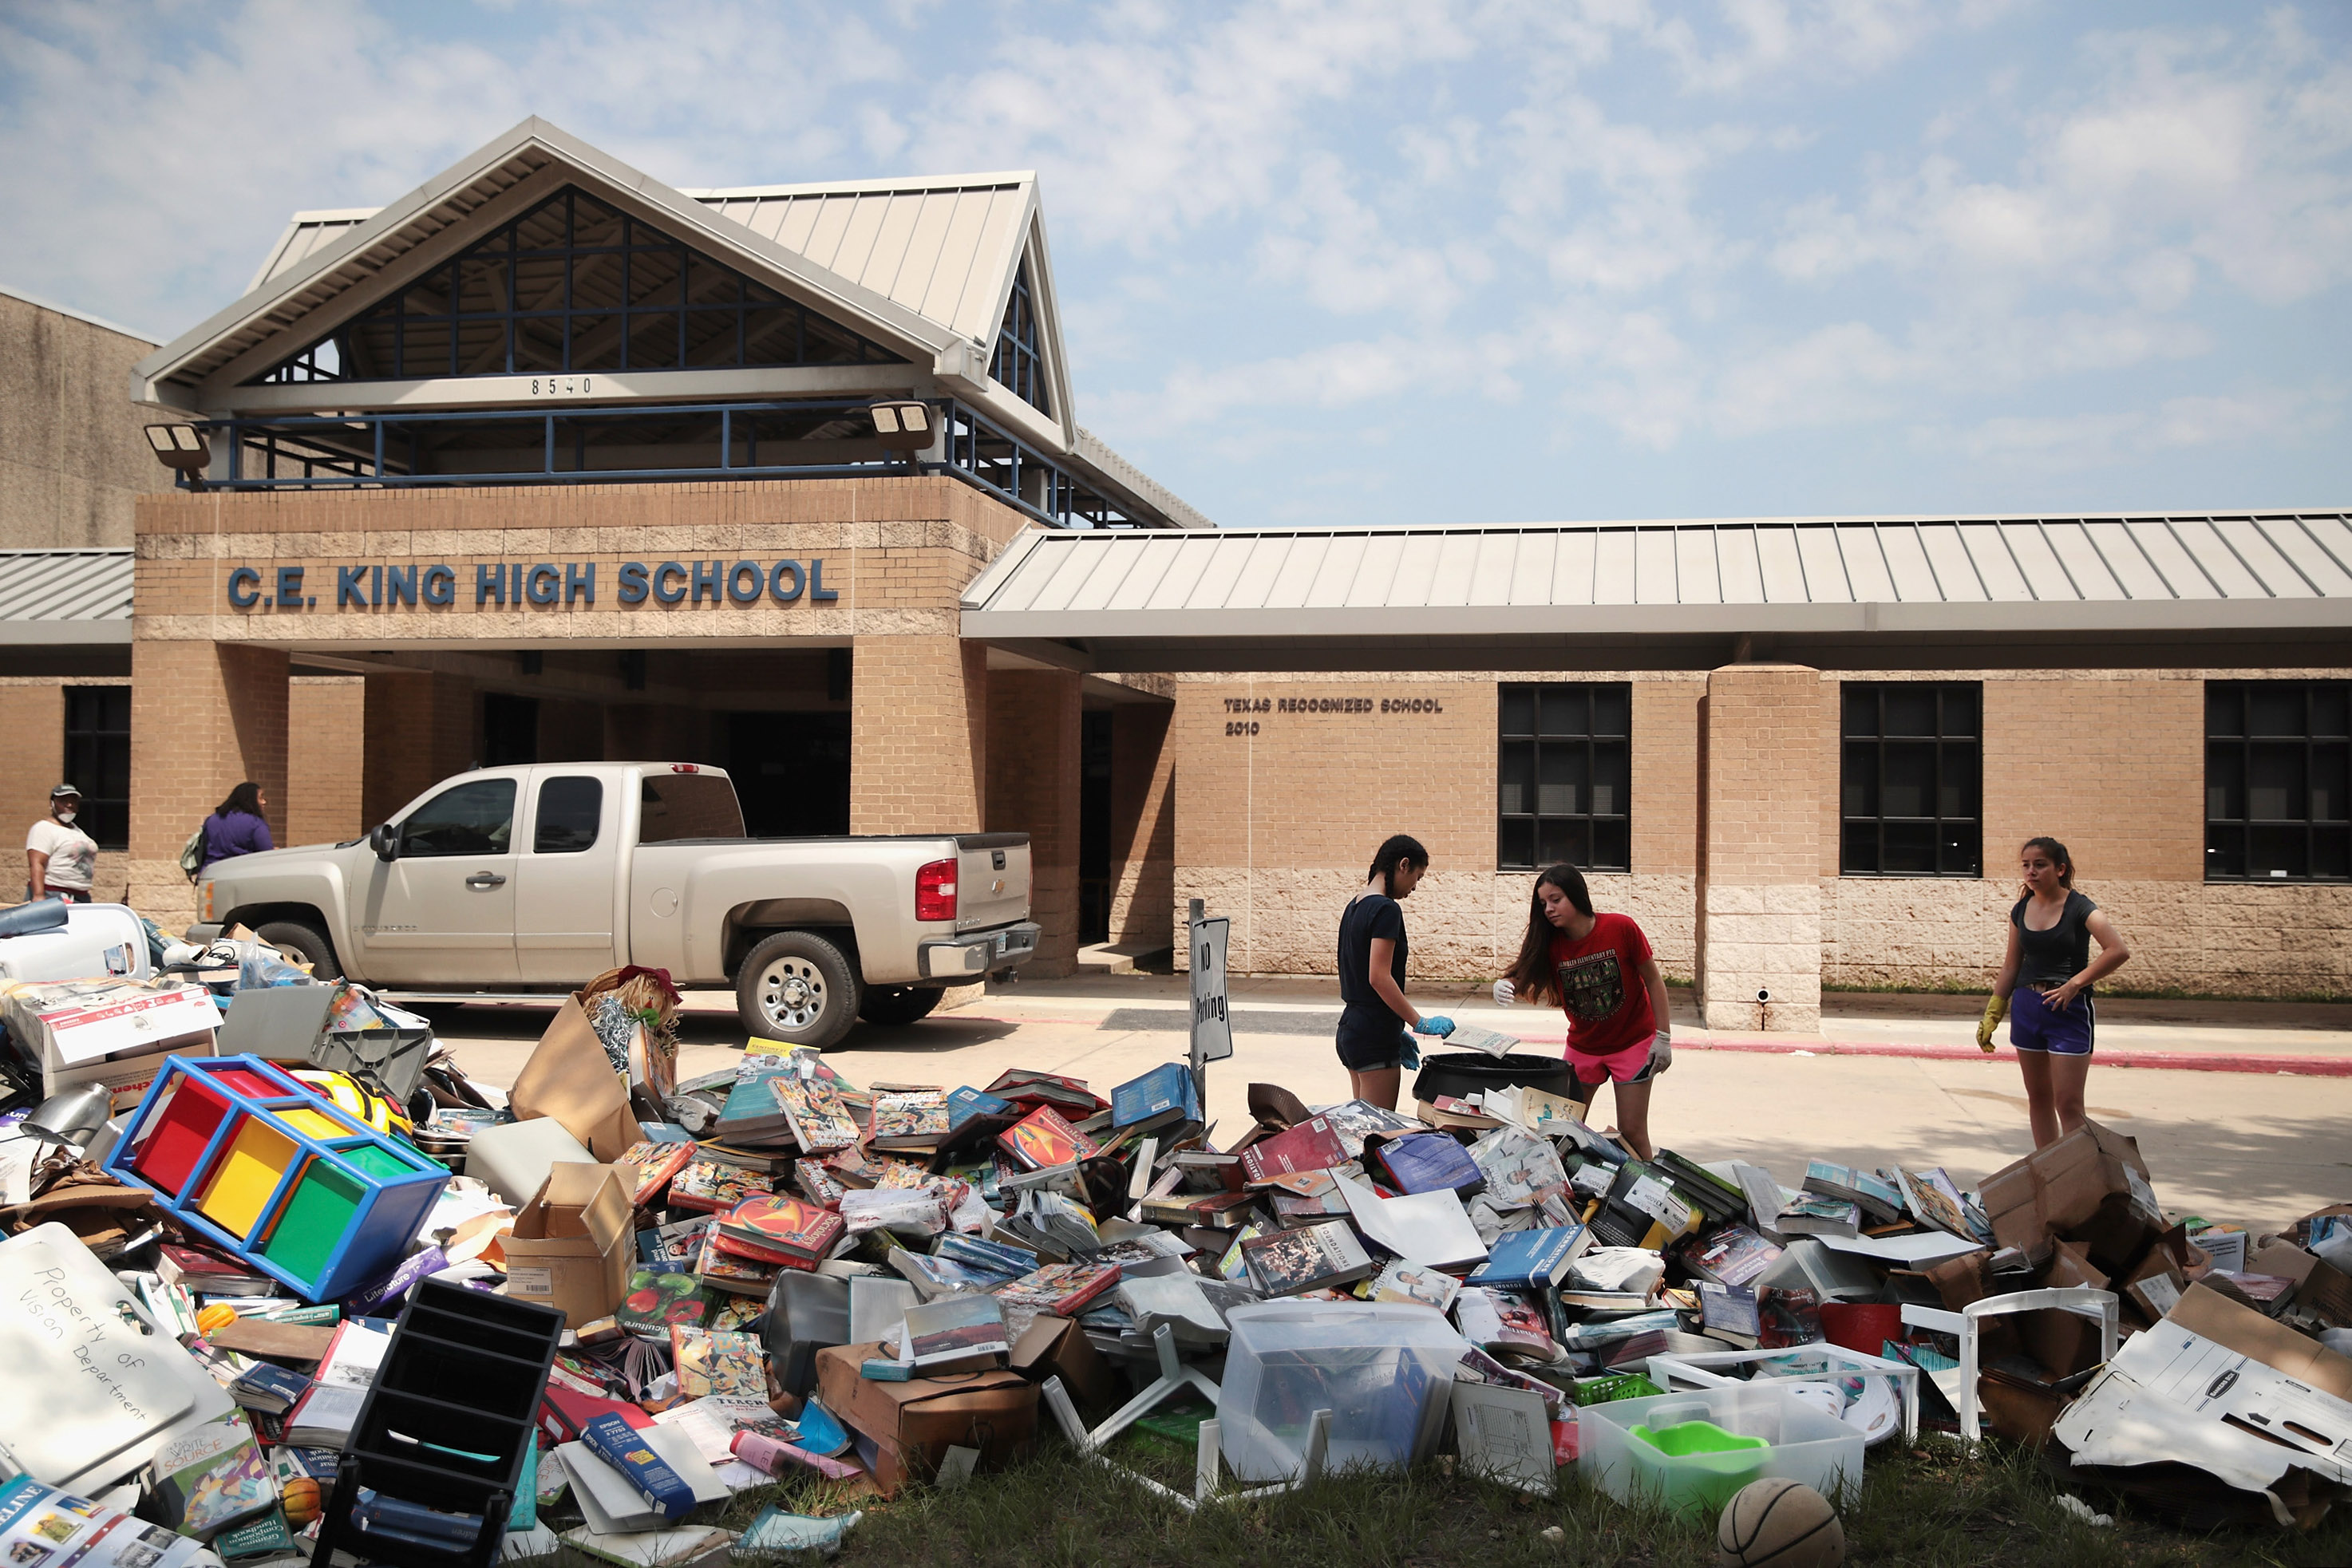 Volunteers and students from C.E. King High School help to clean up the school after torrential rains caused widespread flooding in the area during Hurricane and Tropical Storm Harvey in Houston, Texas on September 1, 2017.(Scott Olson/Getty Images)